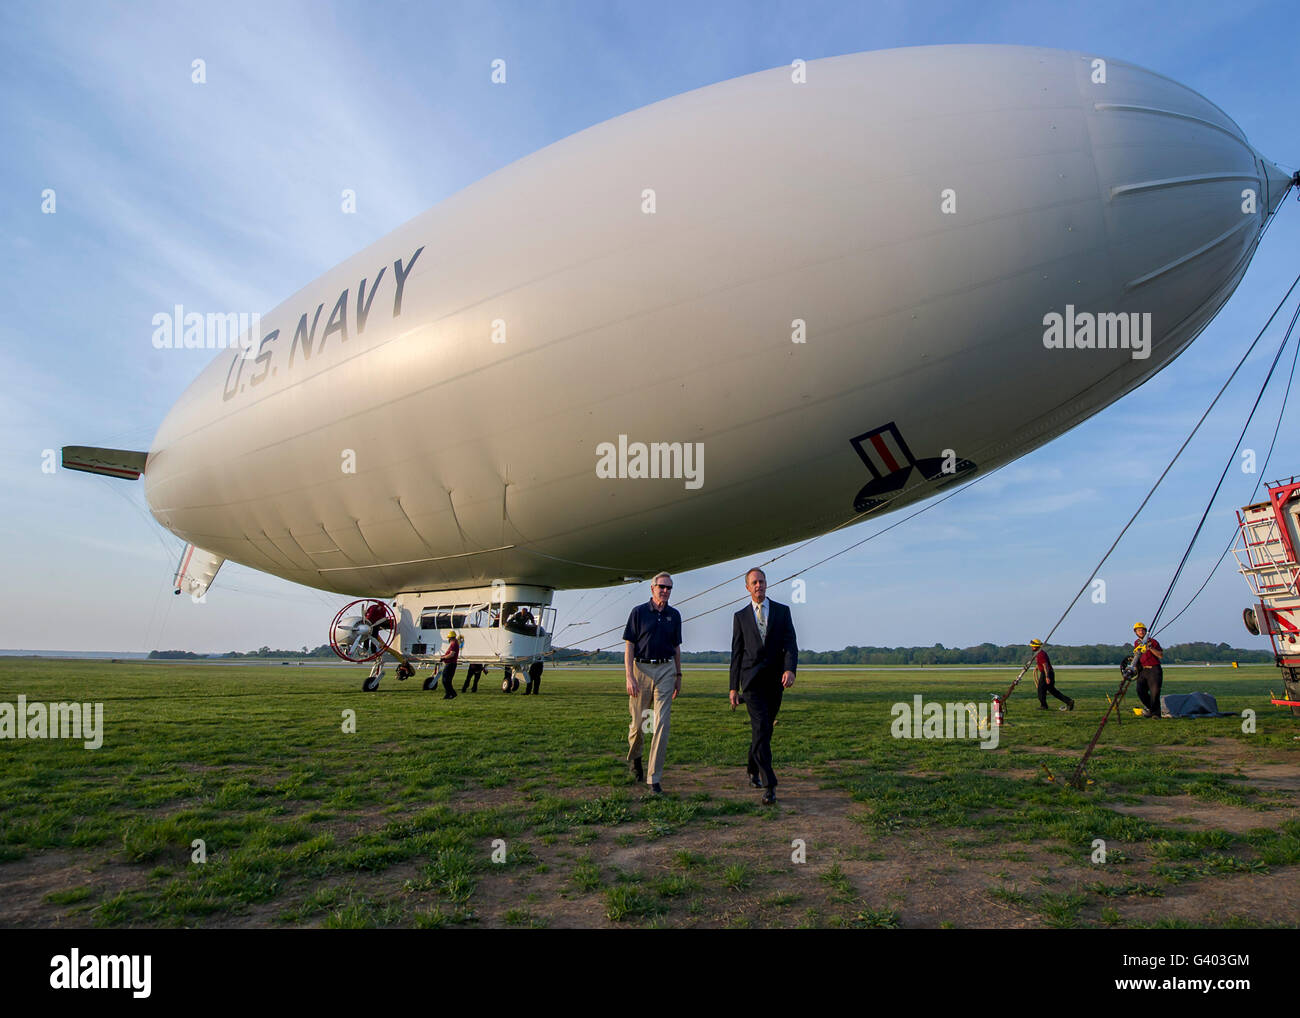 Secretary of the Navy completes a flight aboard the MZ-3A airship. - Stock Image